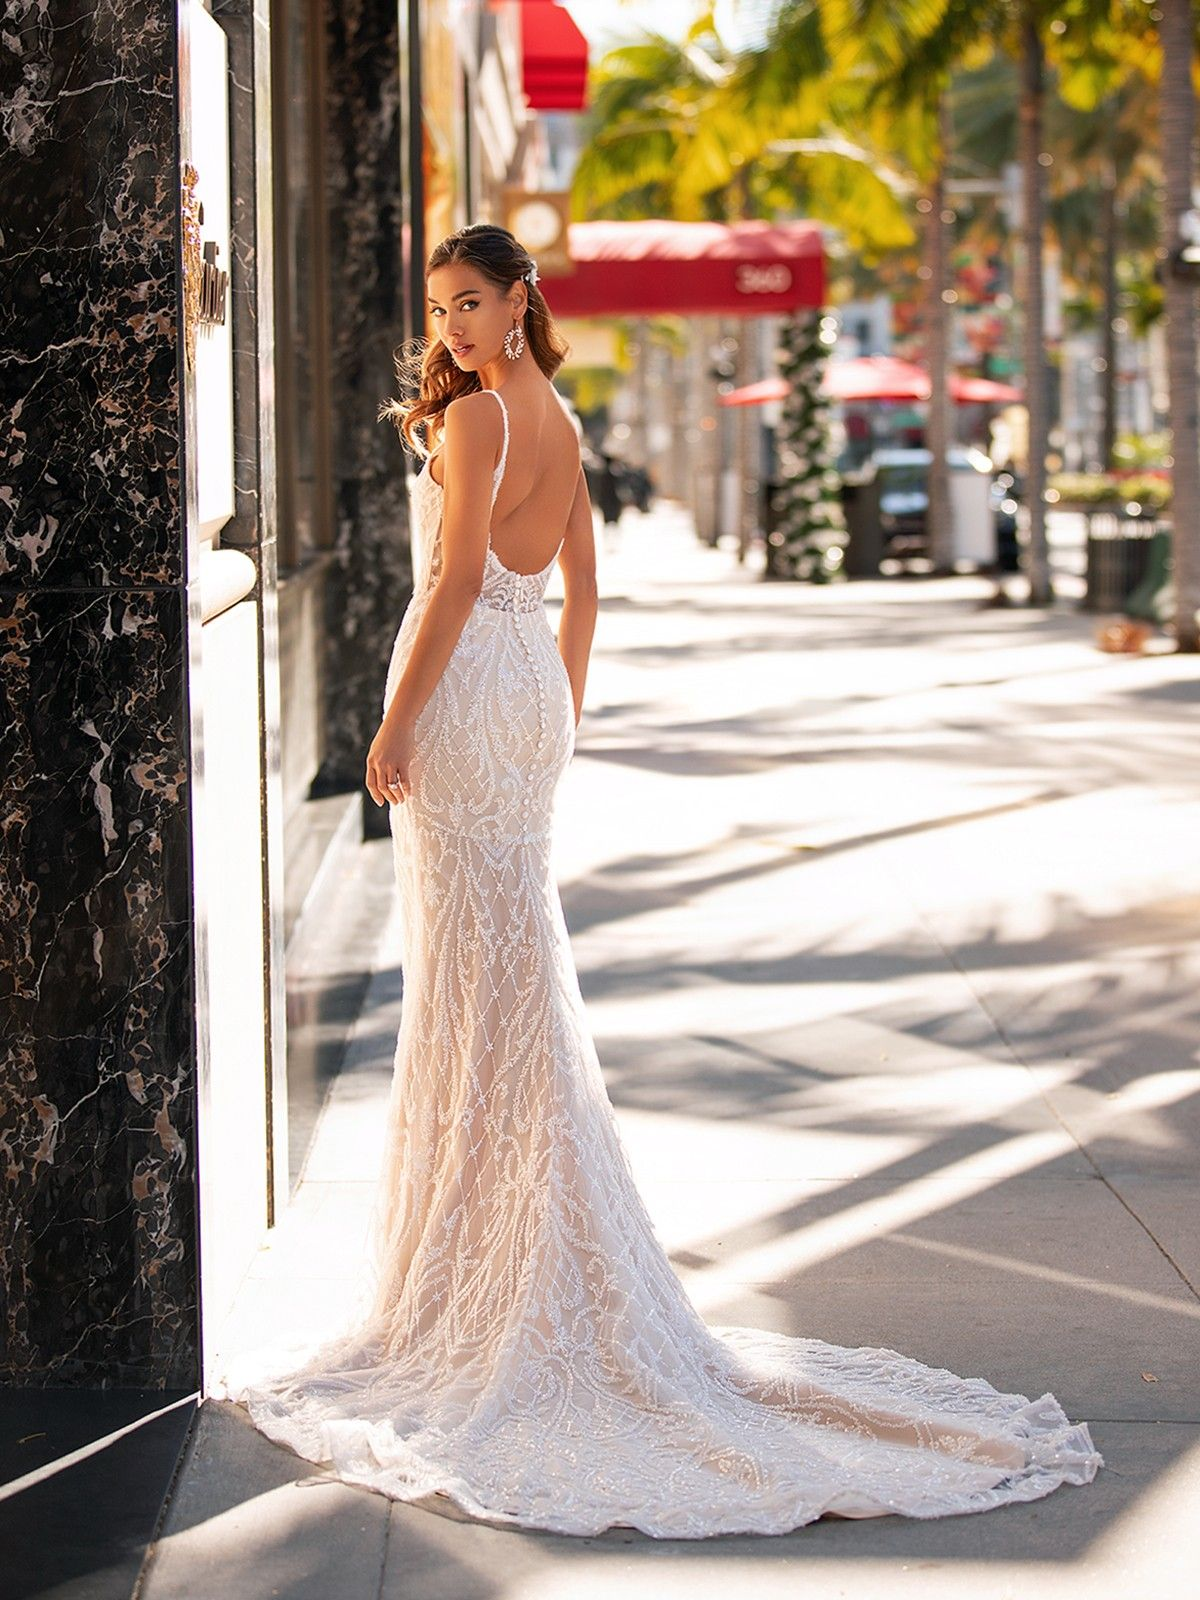 Beaded Sweetheart Neck Mermaid Couture Gown H1442 Wedding Dresses Beaded Wedding Dresses Lace Wedding Dresses [ 1600 x 1200 Pixel ]